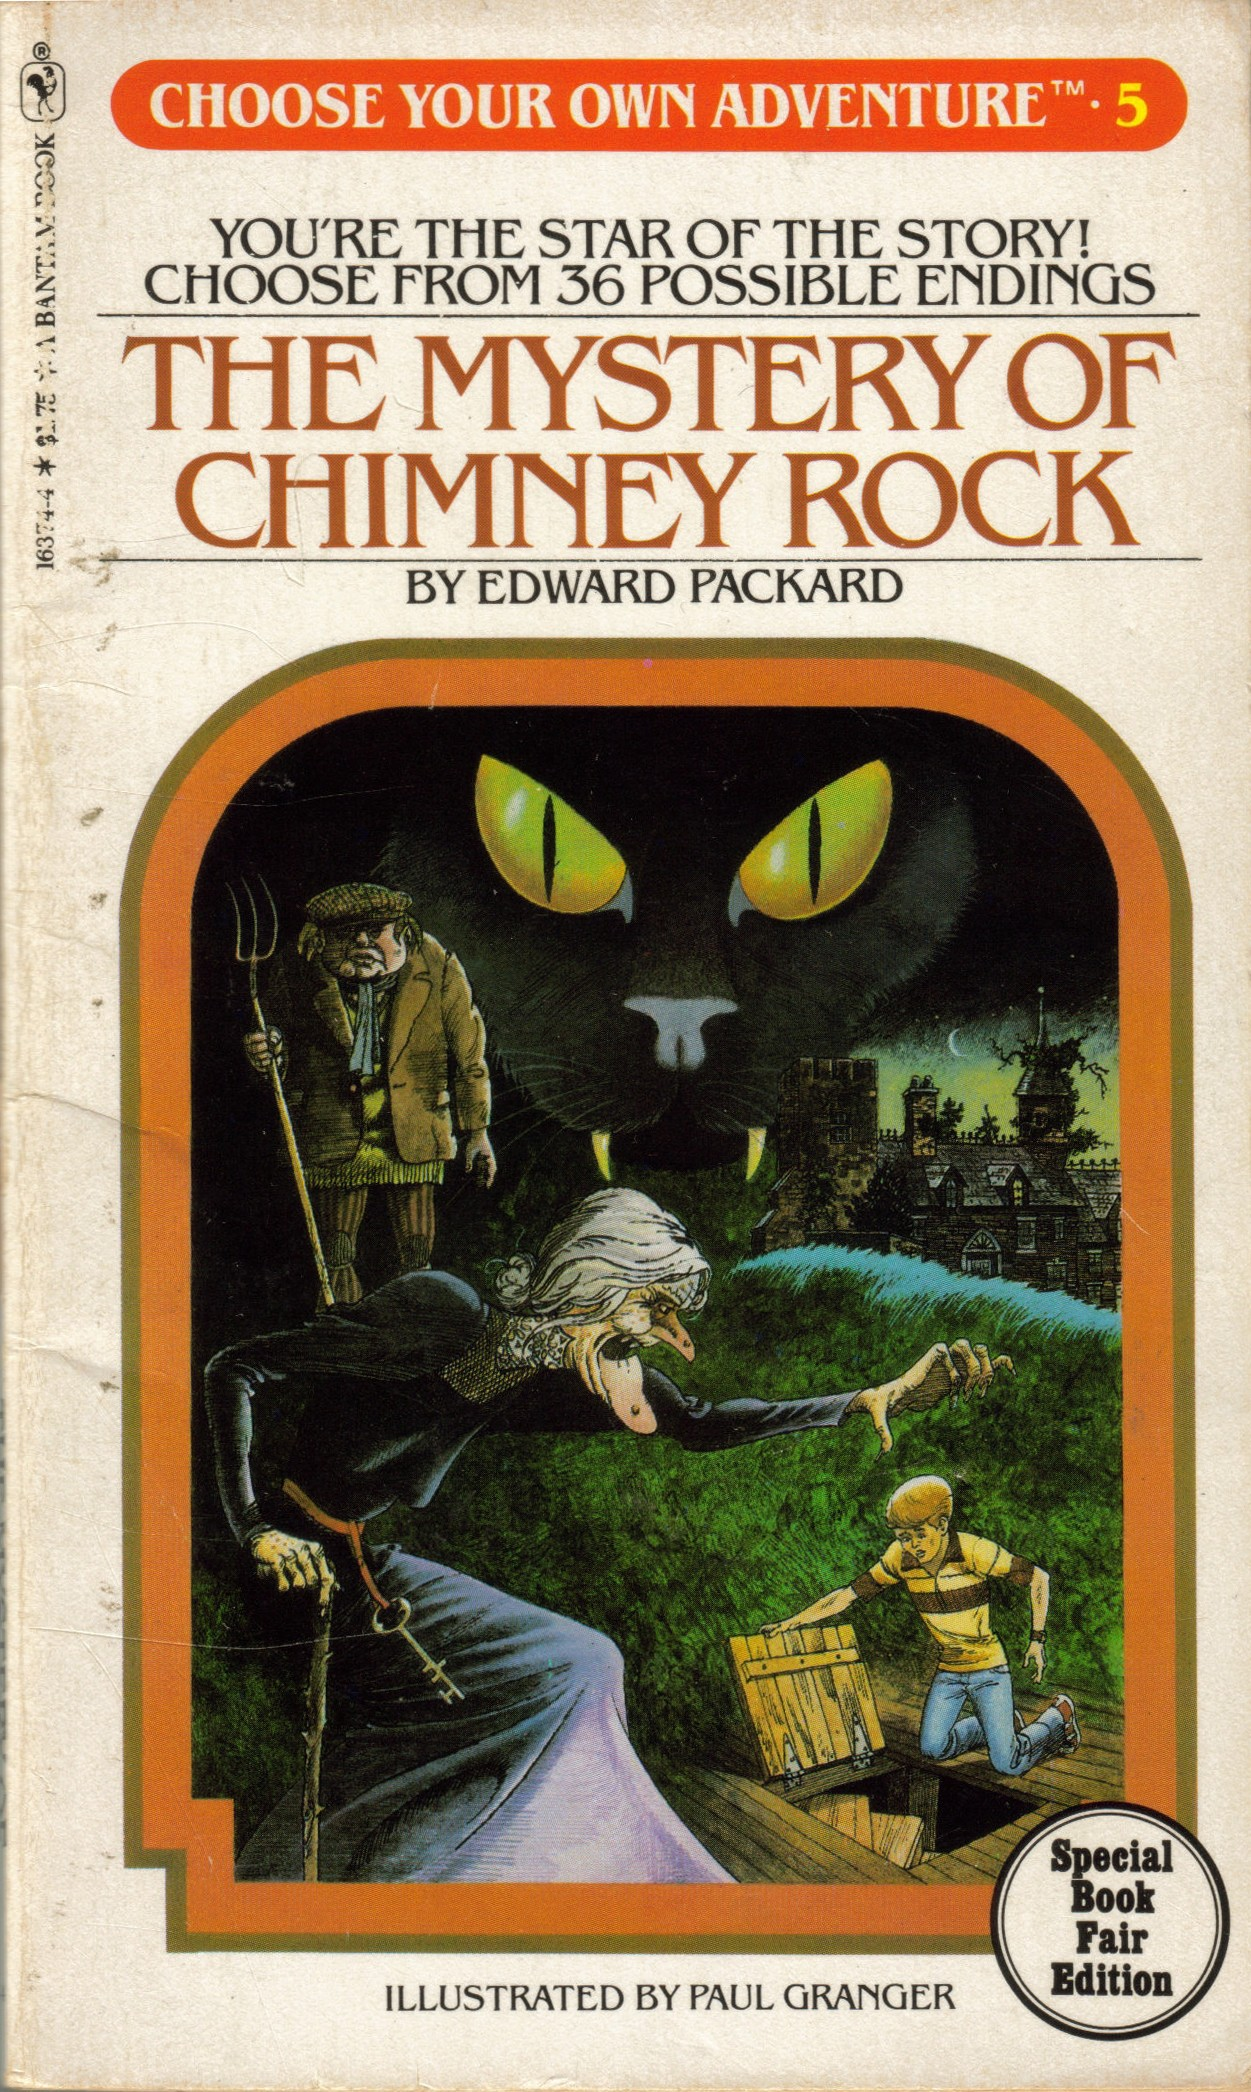 Item - The Mystery of Chimney Rock - Demian's Gamebook Web Page